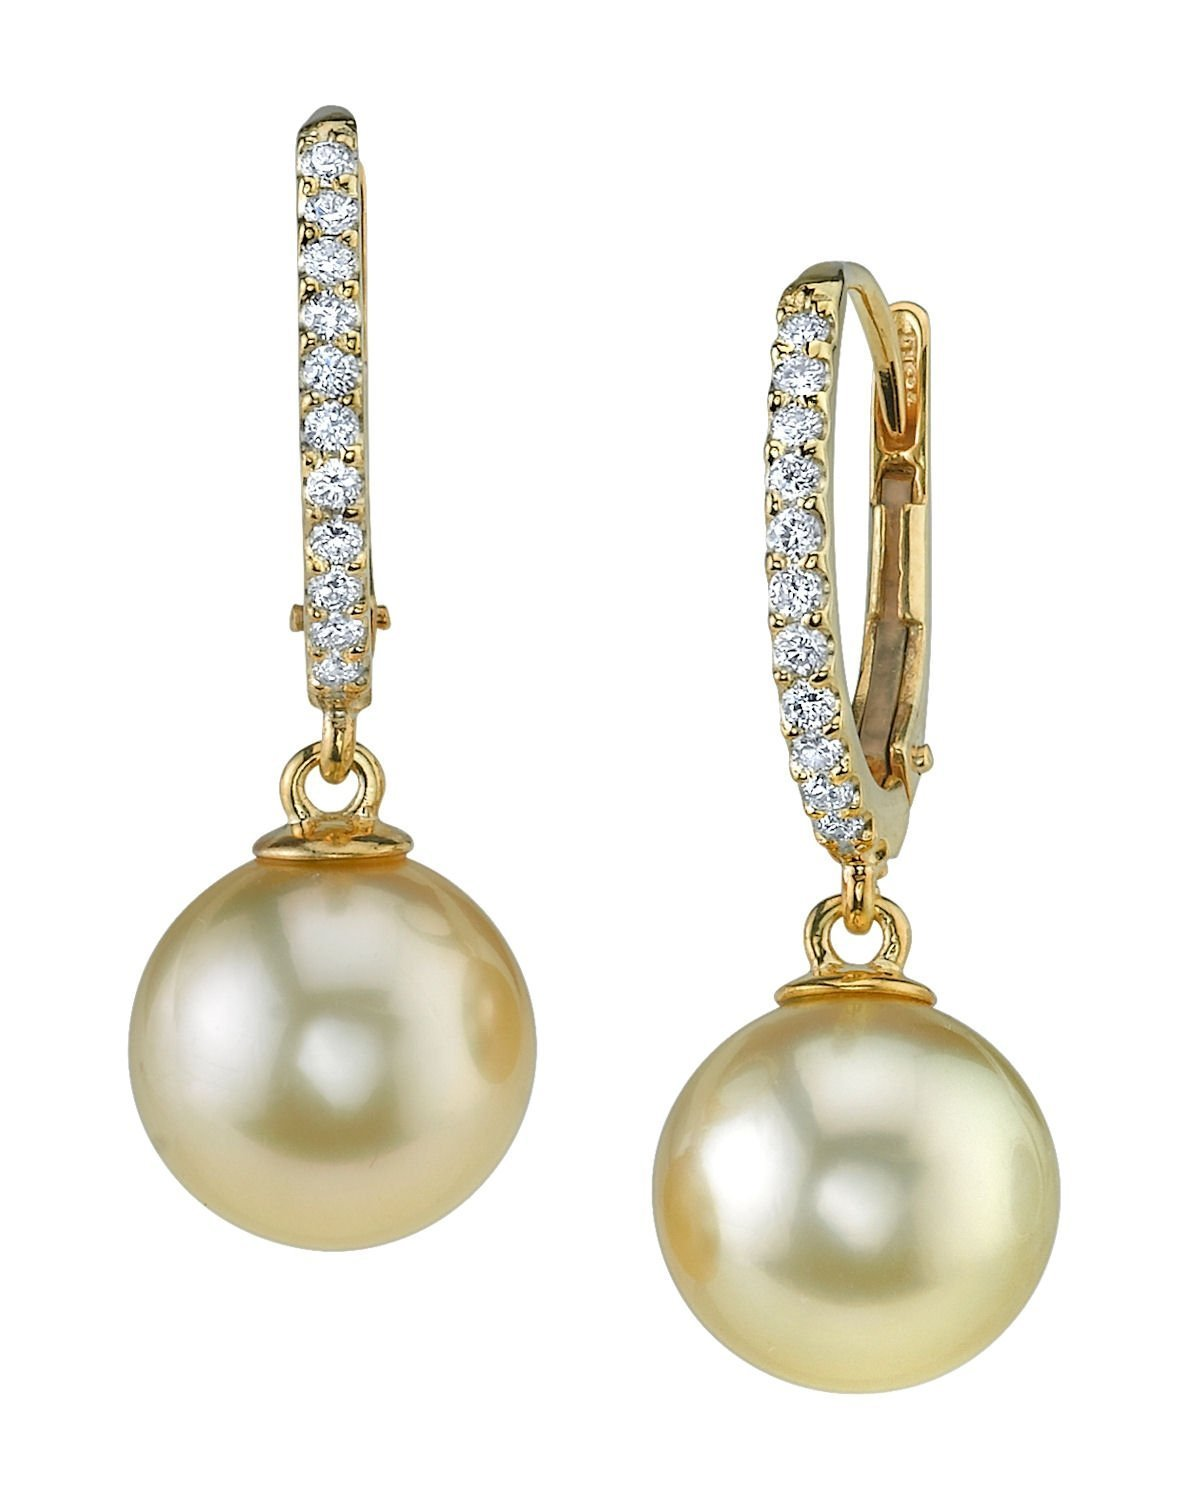 THE PEARL SOURCE 18K Gold 9-10mm Round Golden South Sea Cultured Pearl & Diamond Aurora Leverback Earrings for Women